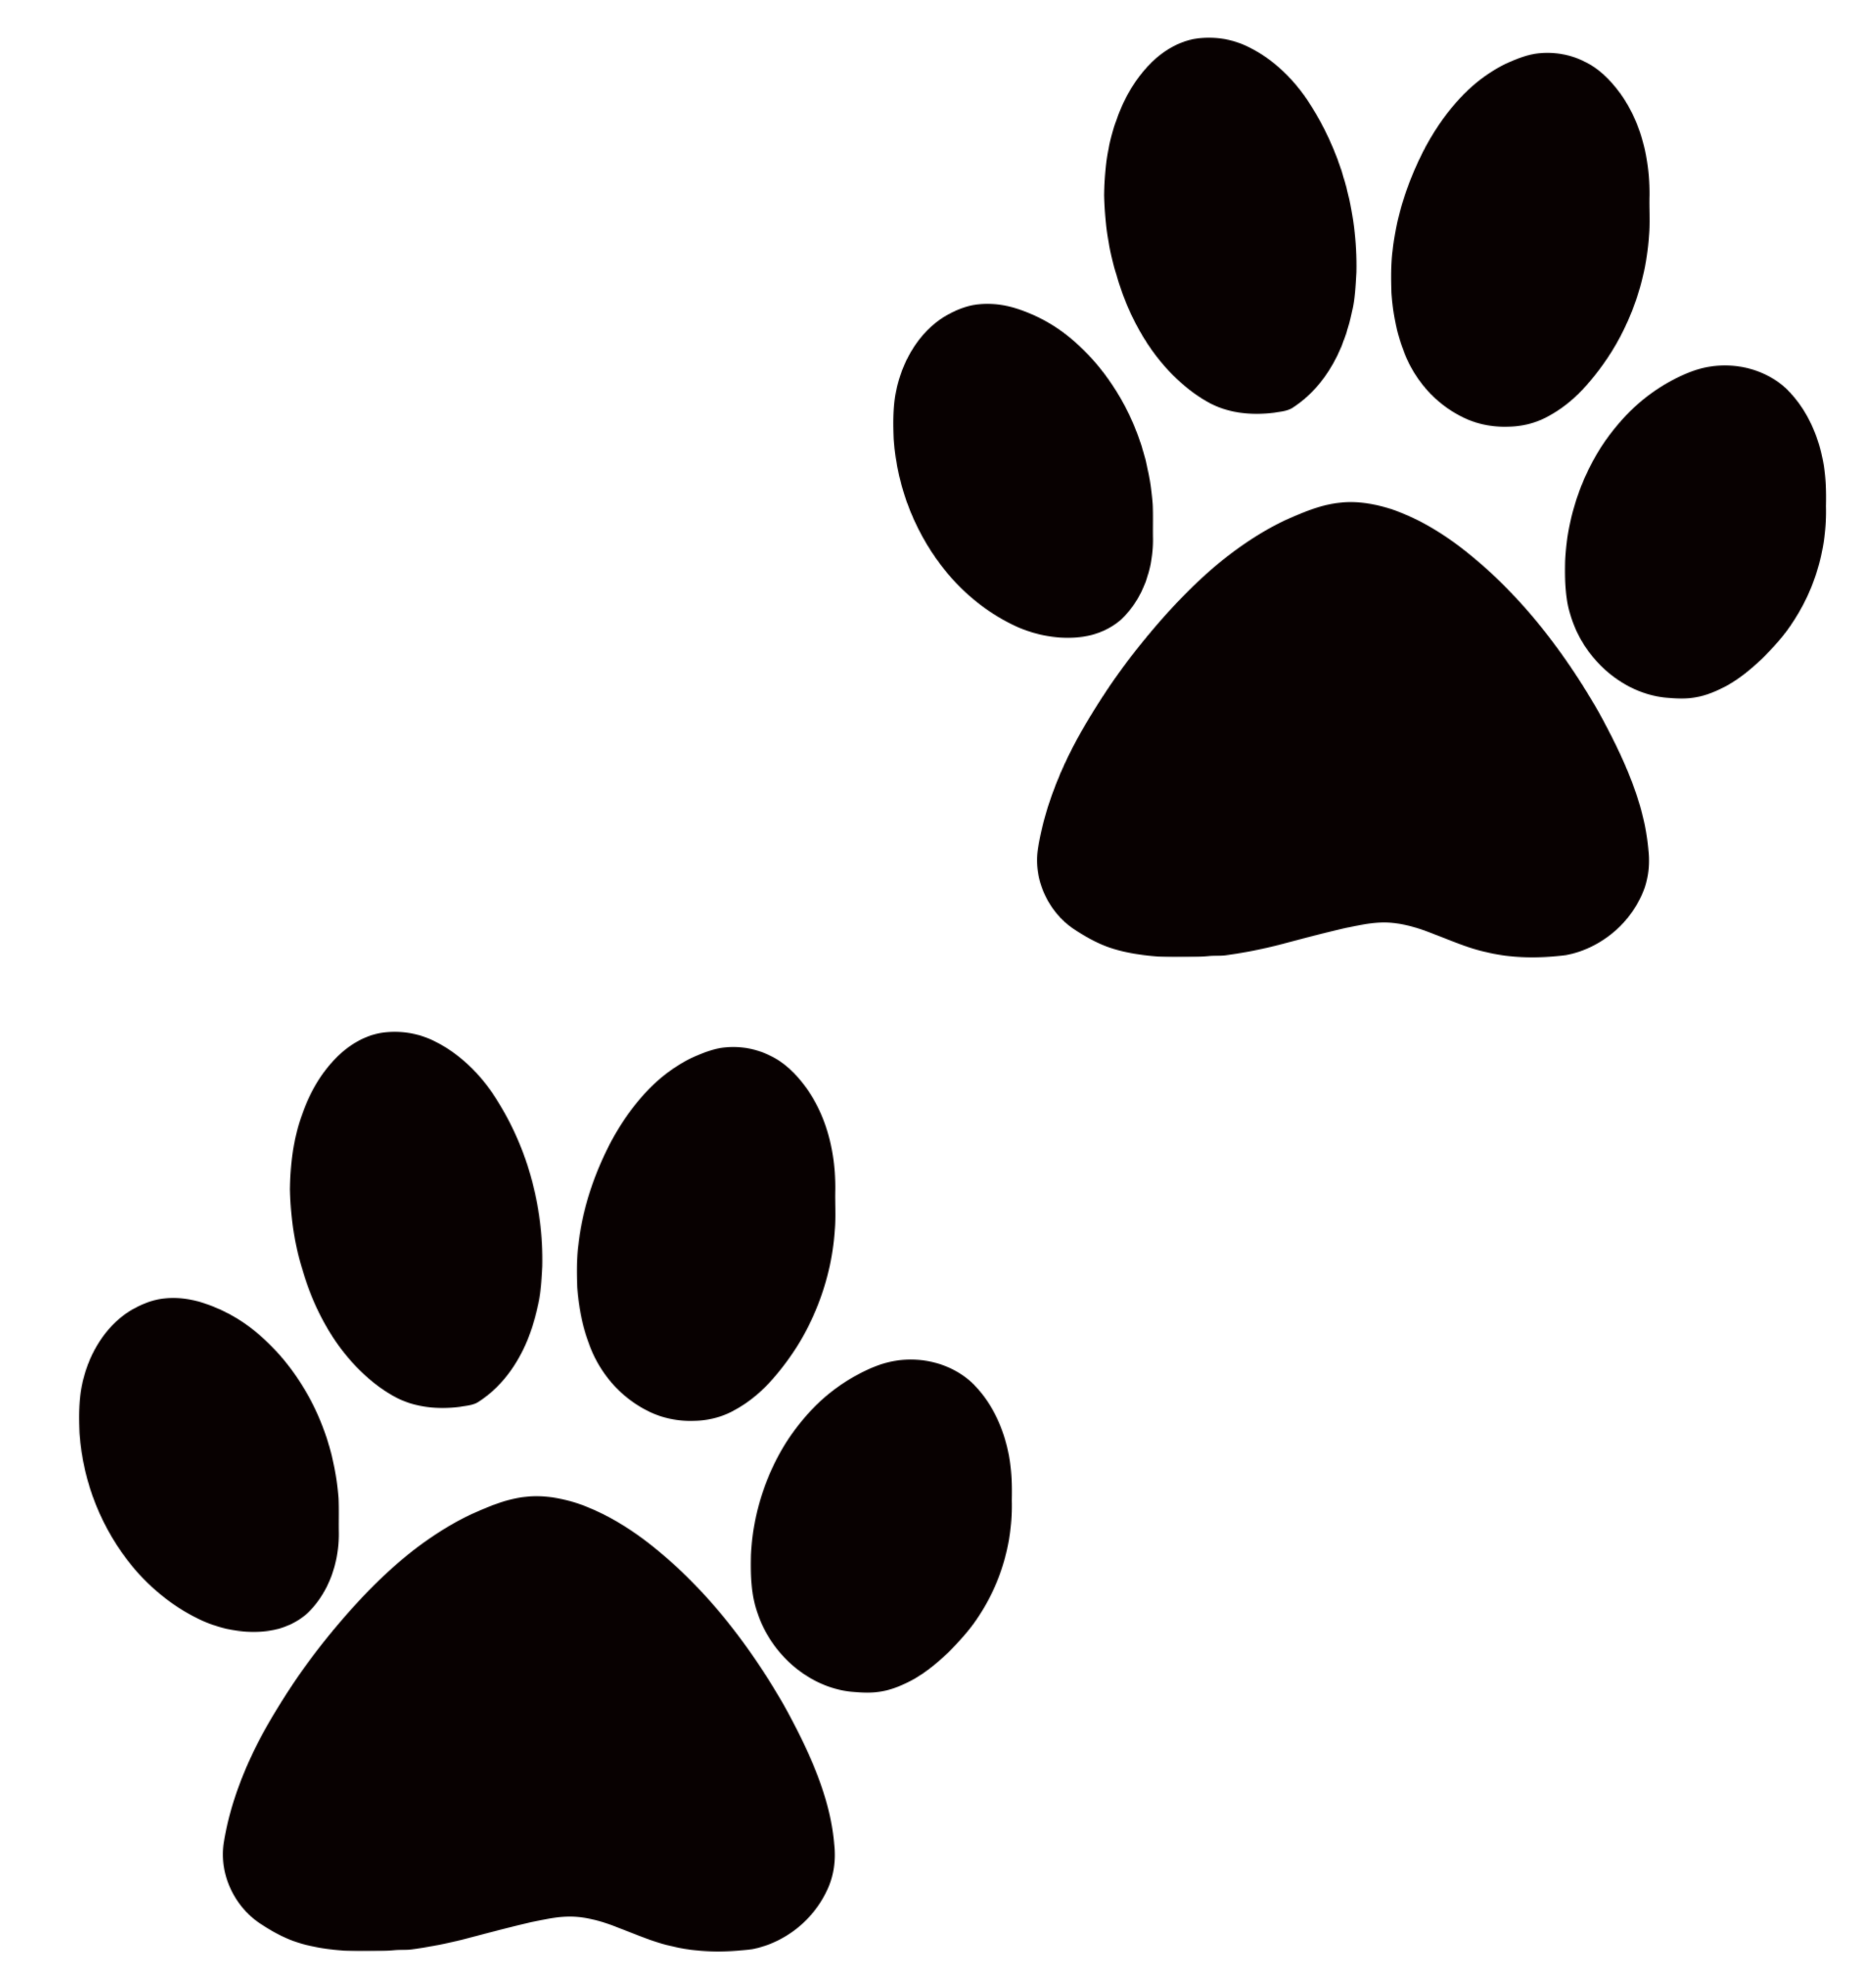 Transparent paw drawing. Collection of print